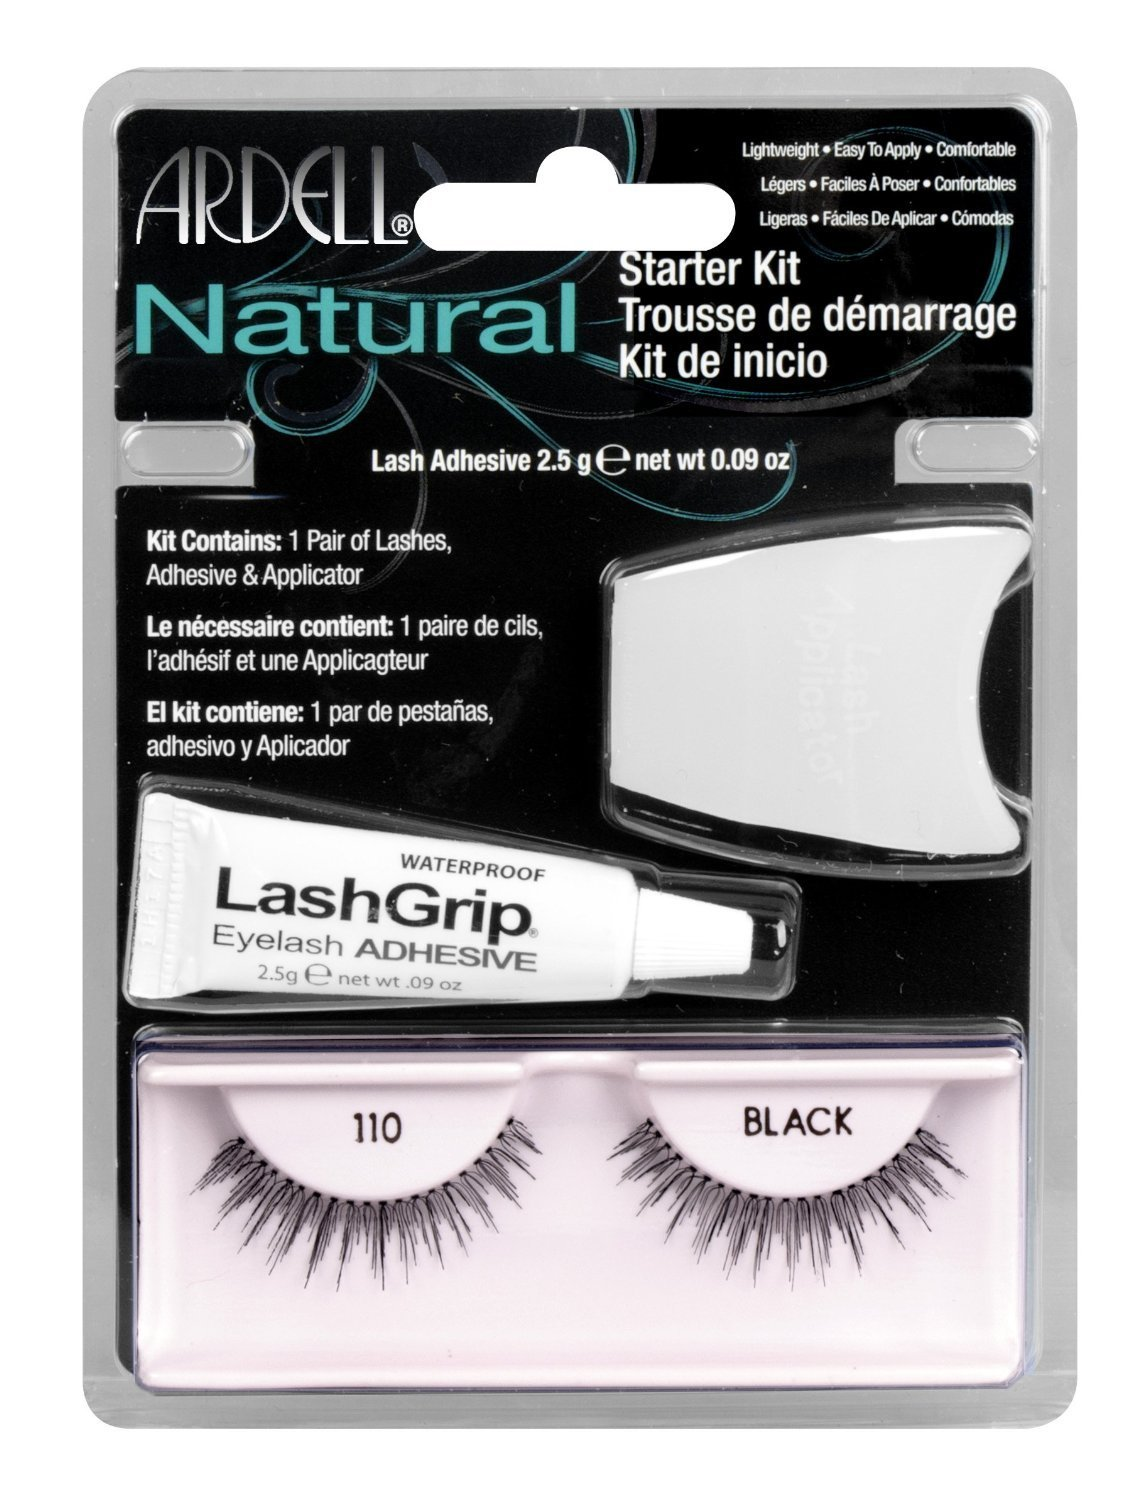 465f4bed85a Get Quotations · Pack of 2-Ardell Natural Starter Kit Lashes, 110 Black